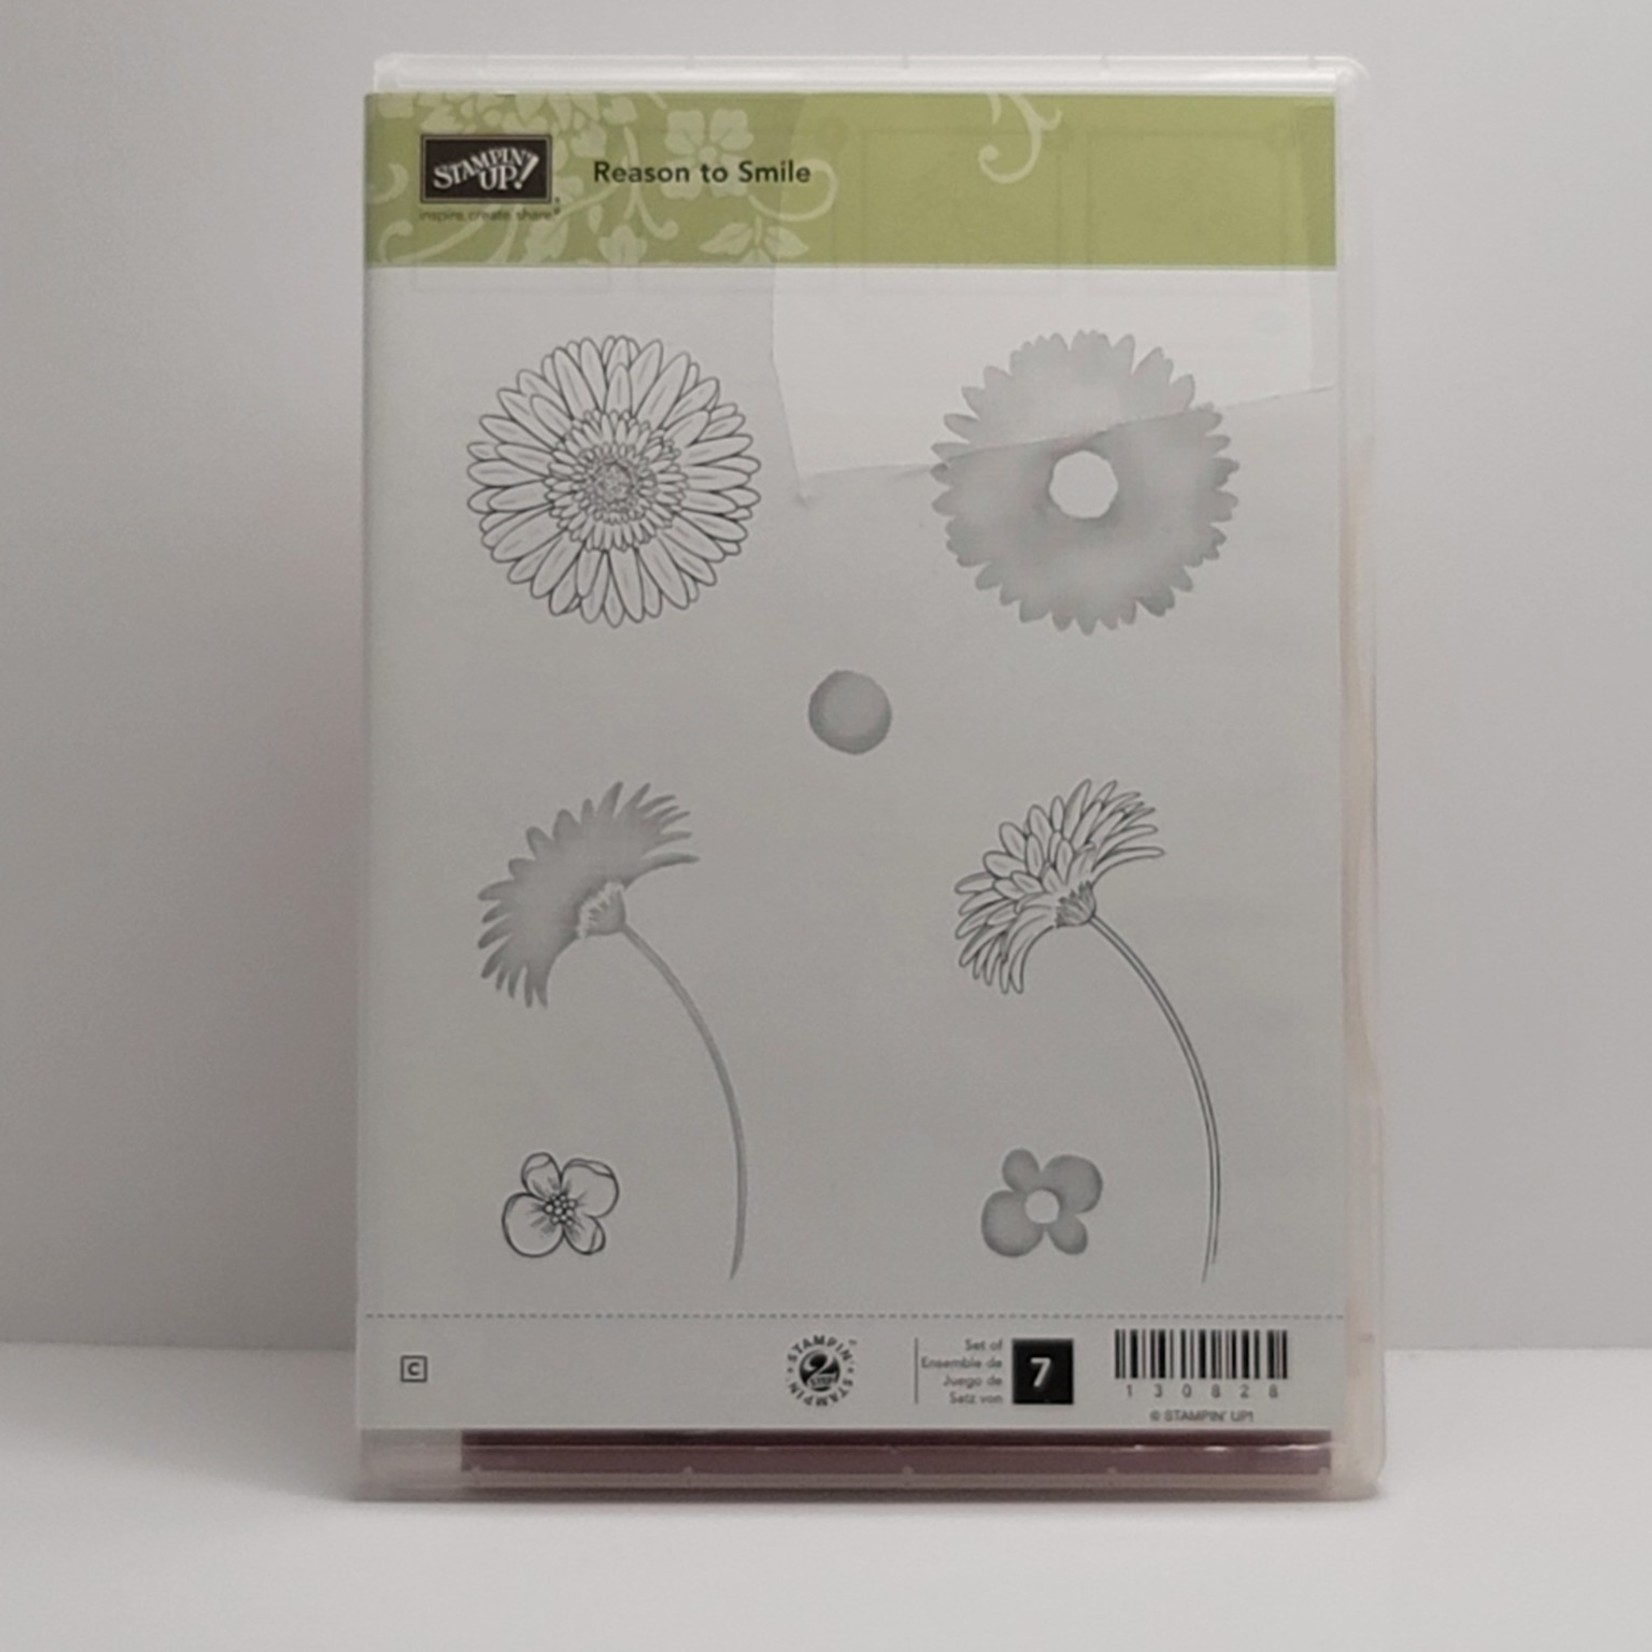 Stampin' Up Stampin' Up - Cling Stamps - Reason to Smile